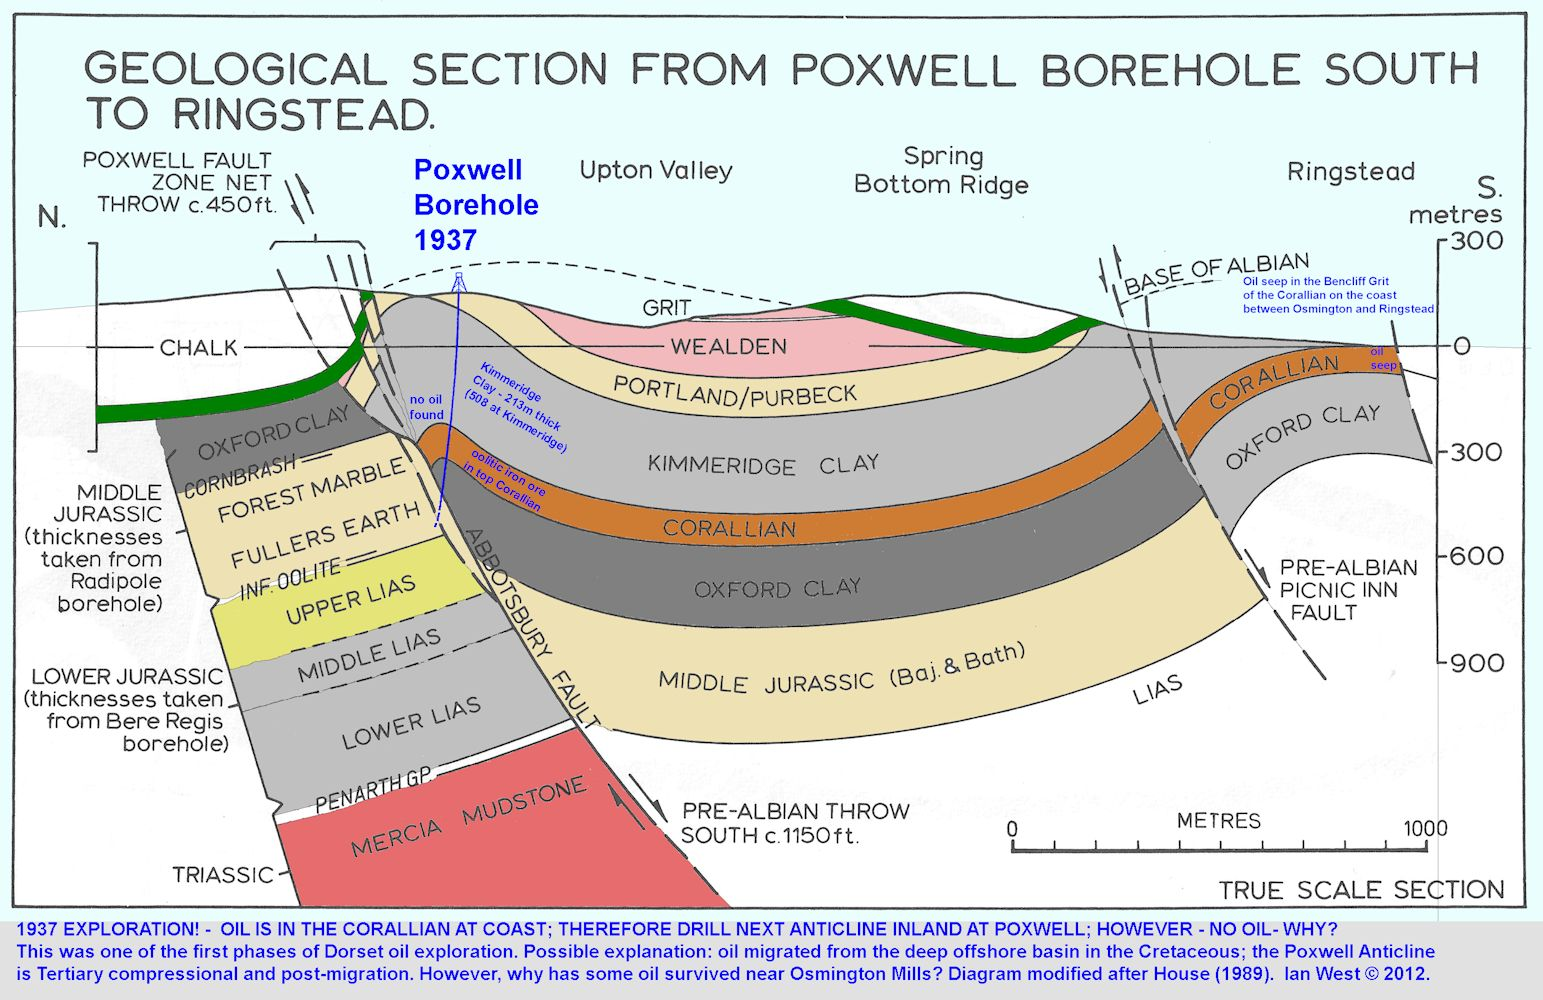 The Poxwell No. 3 Borehole was unsucessful in the search for Iranian-style oil-bearing anticlines